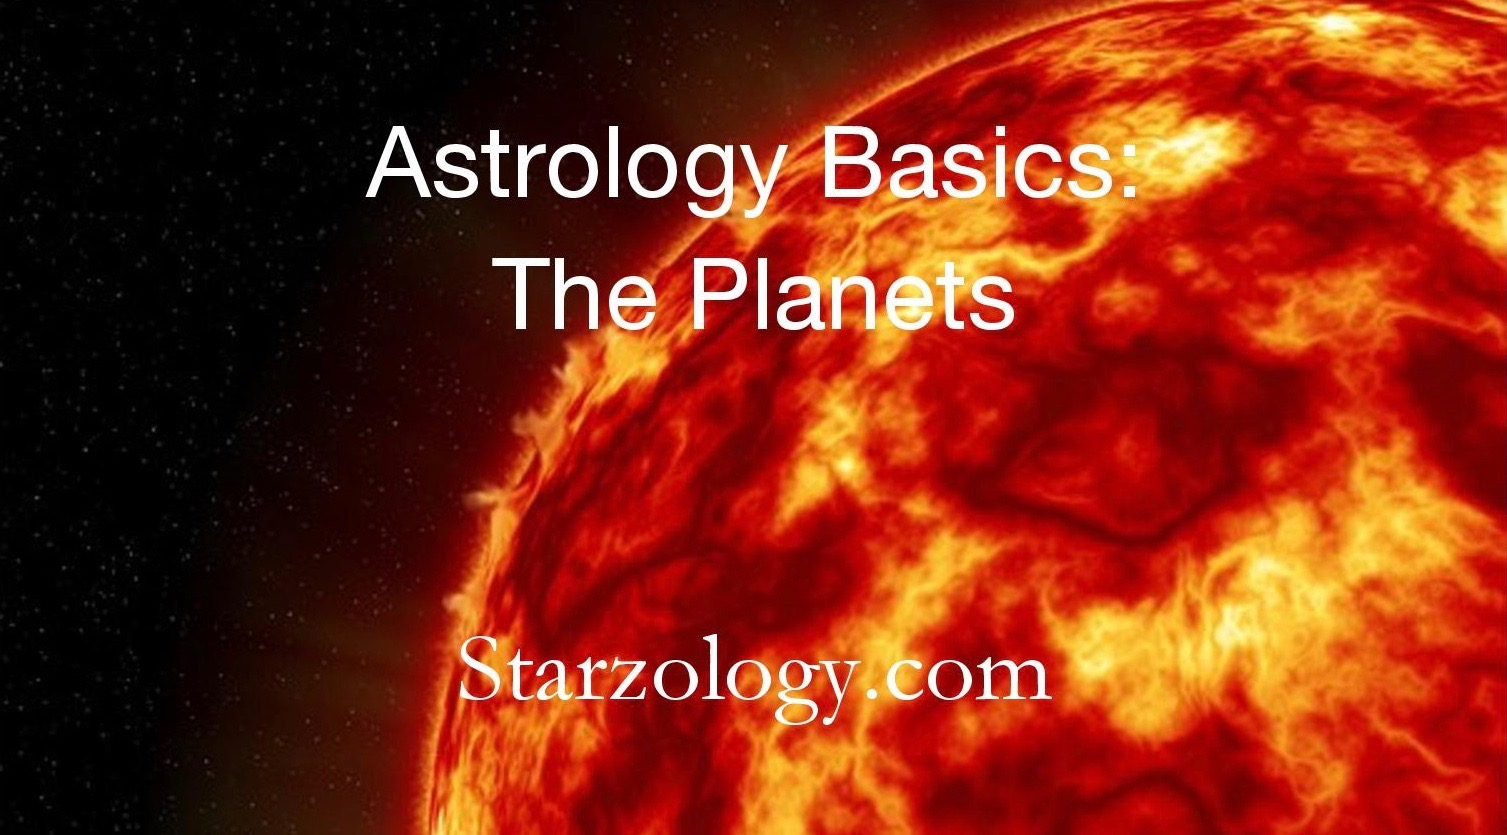 Astrology Basics The Planets Page 001 2